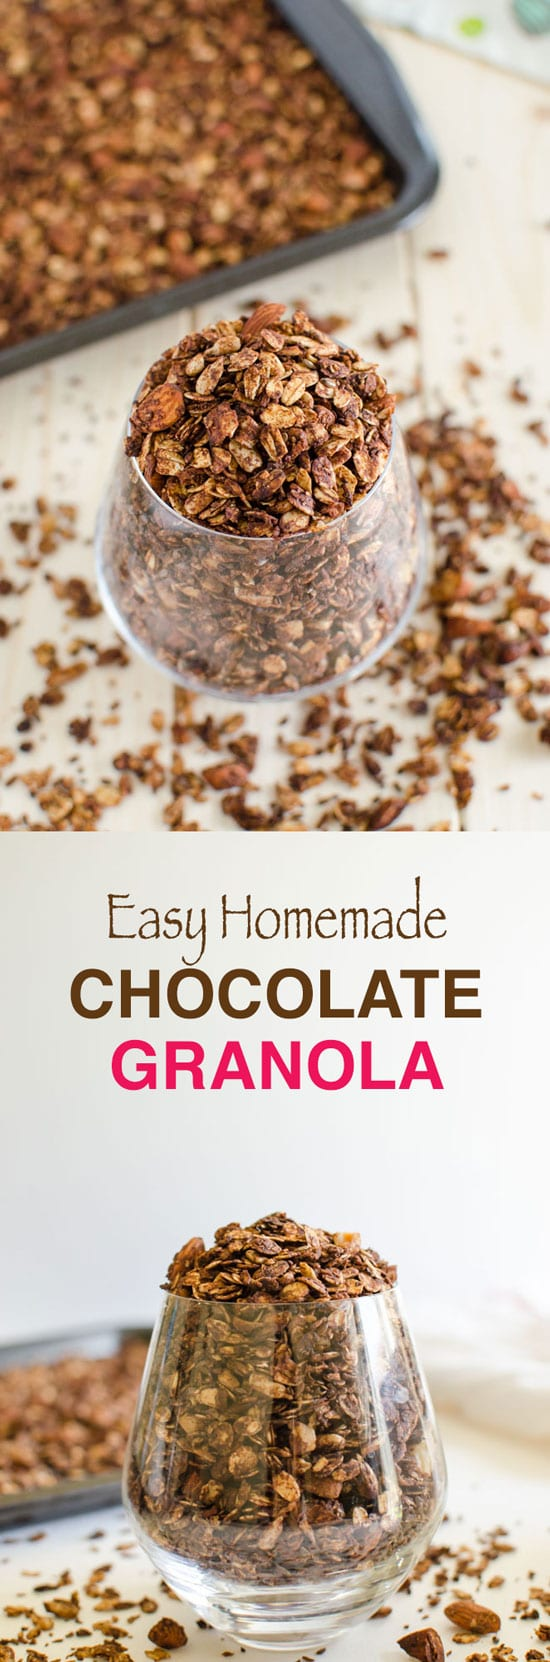 This easy homemade granola is prepared using rolled oats, nuts, seeds, and of course chocolate etc. It is almost like a mixture of trail mix + rolled oats.